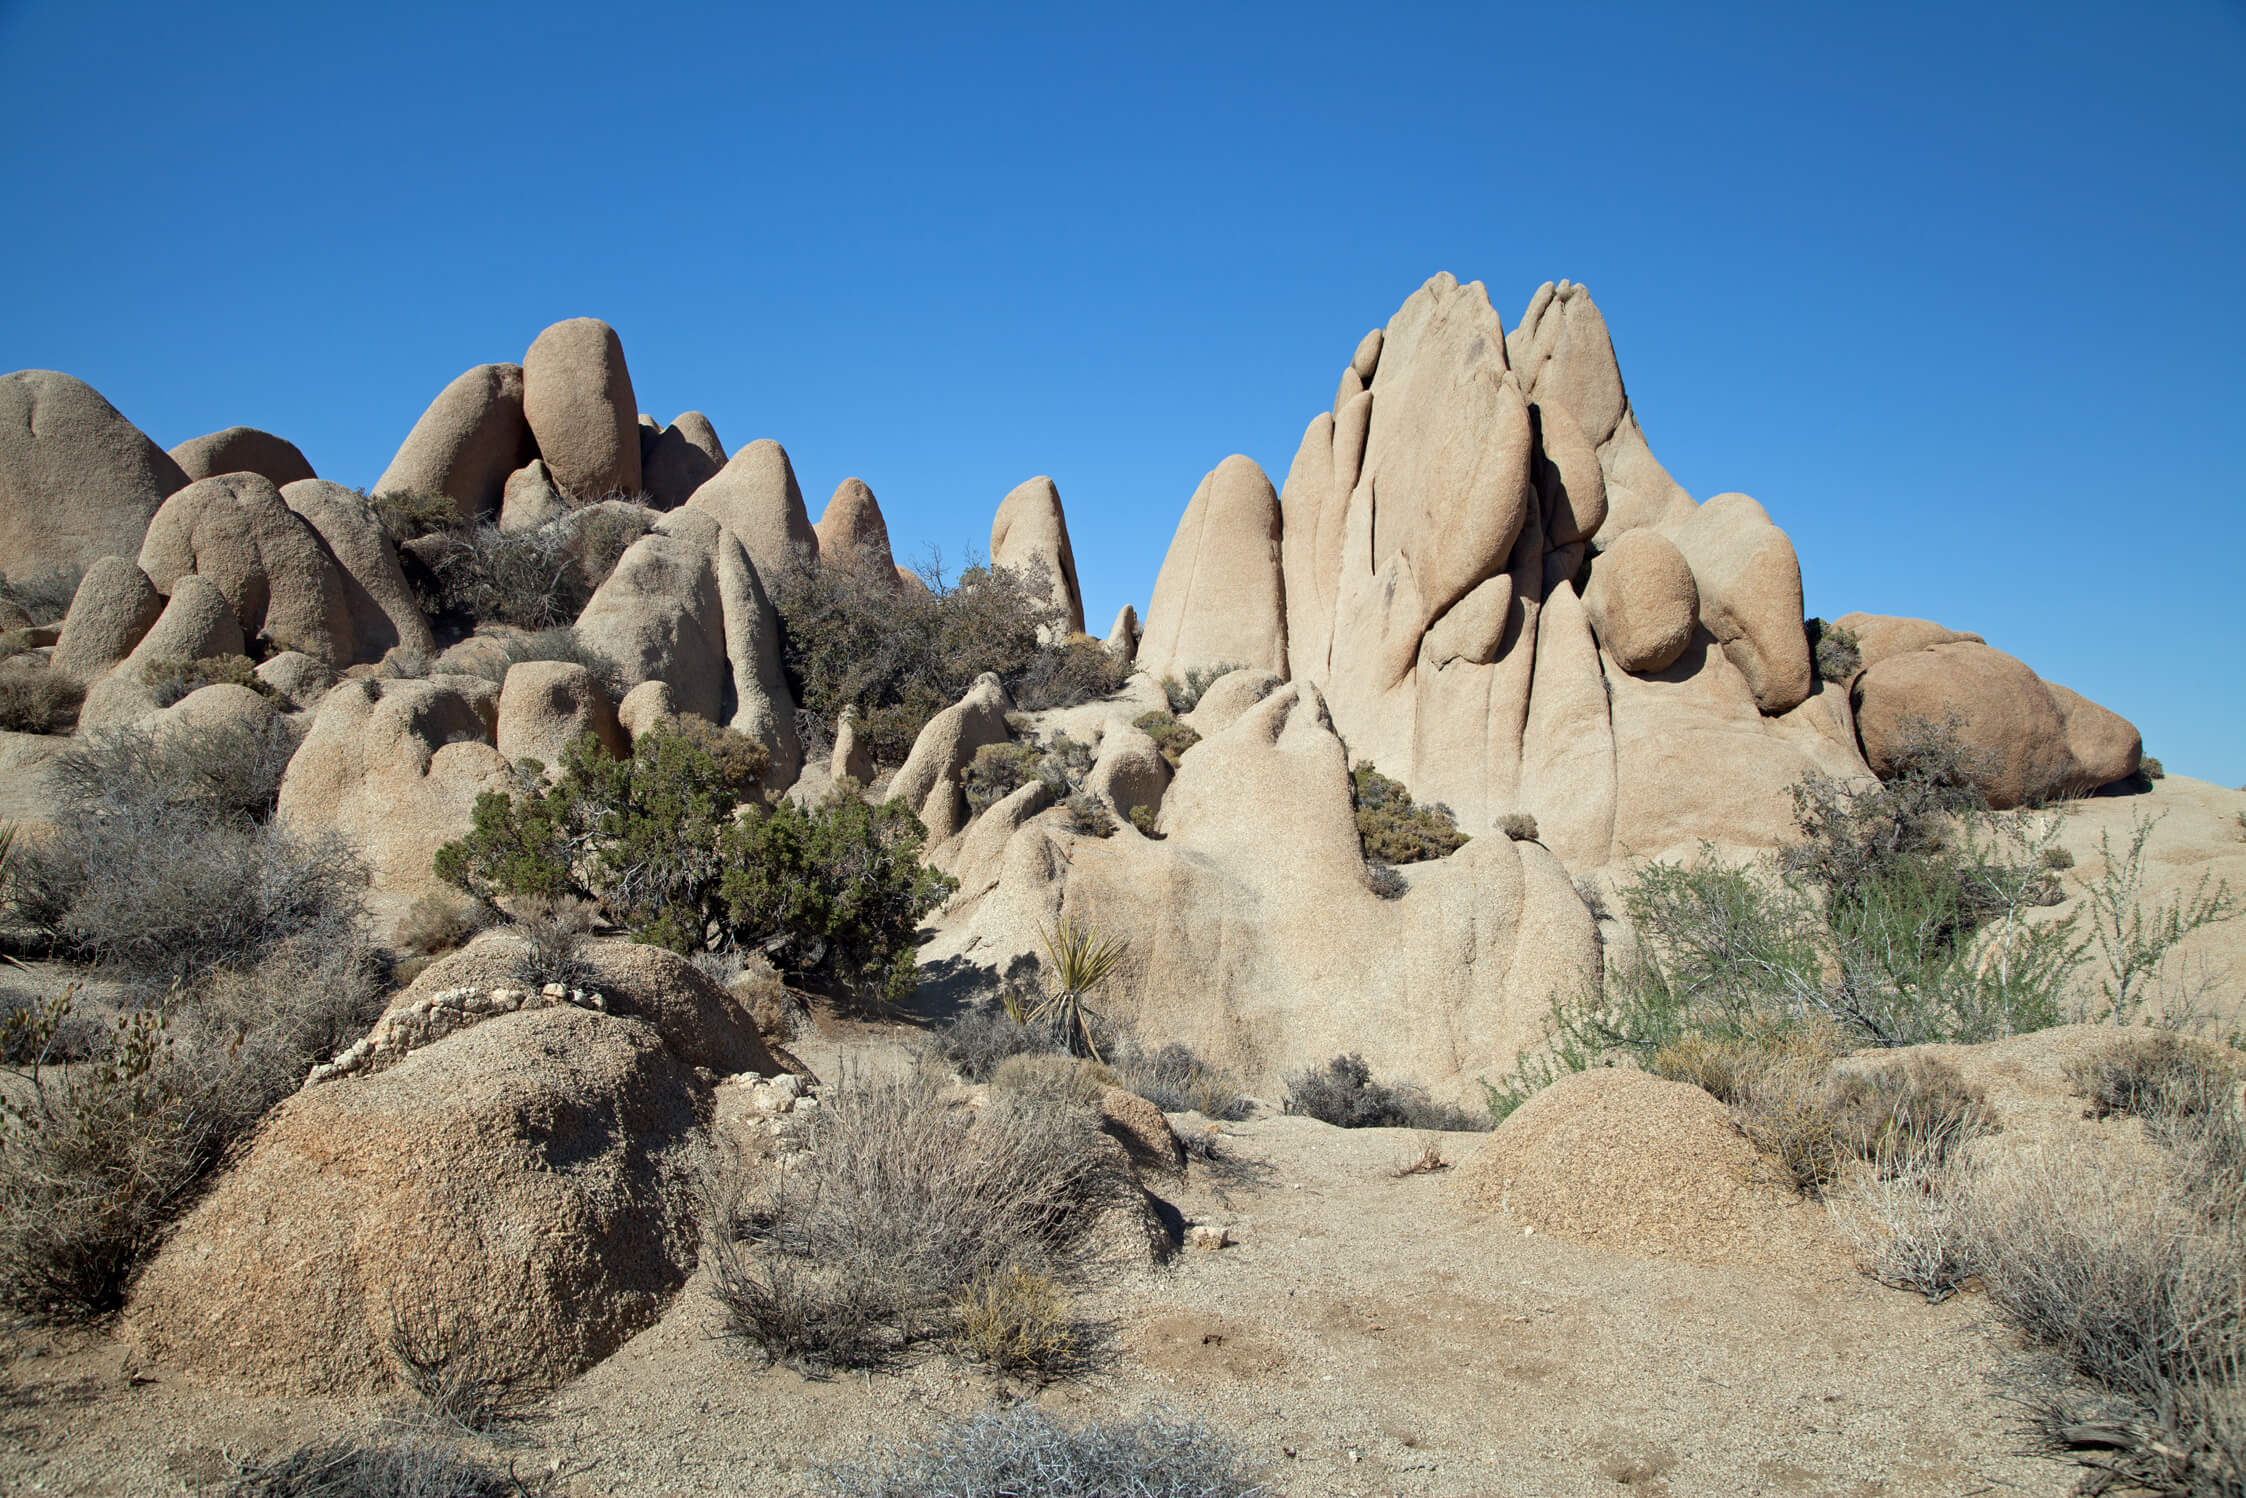 Fascinating rock formations